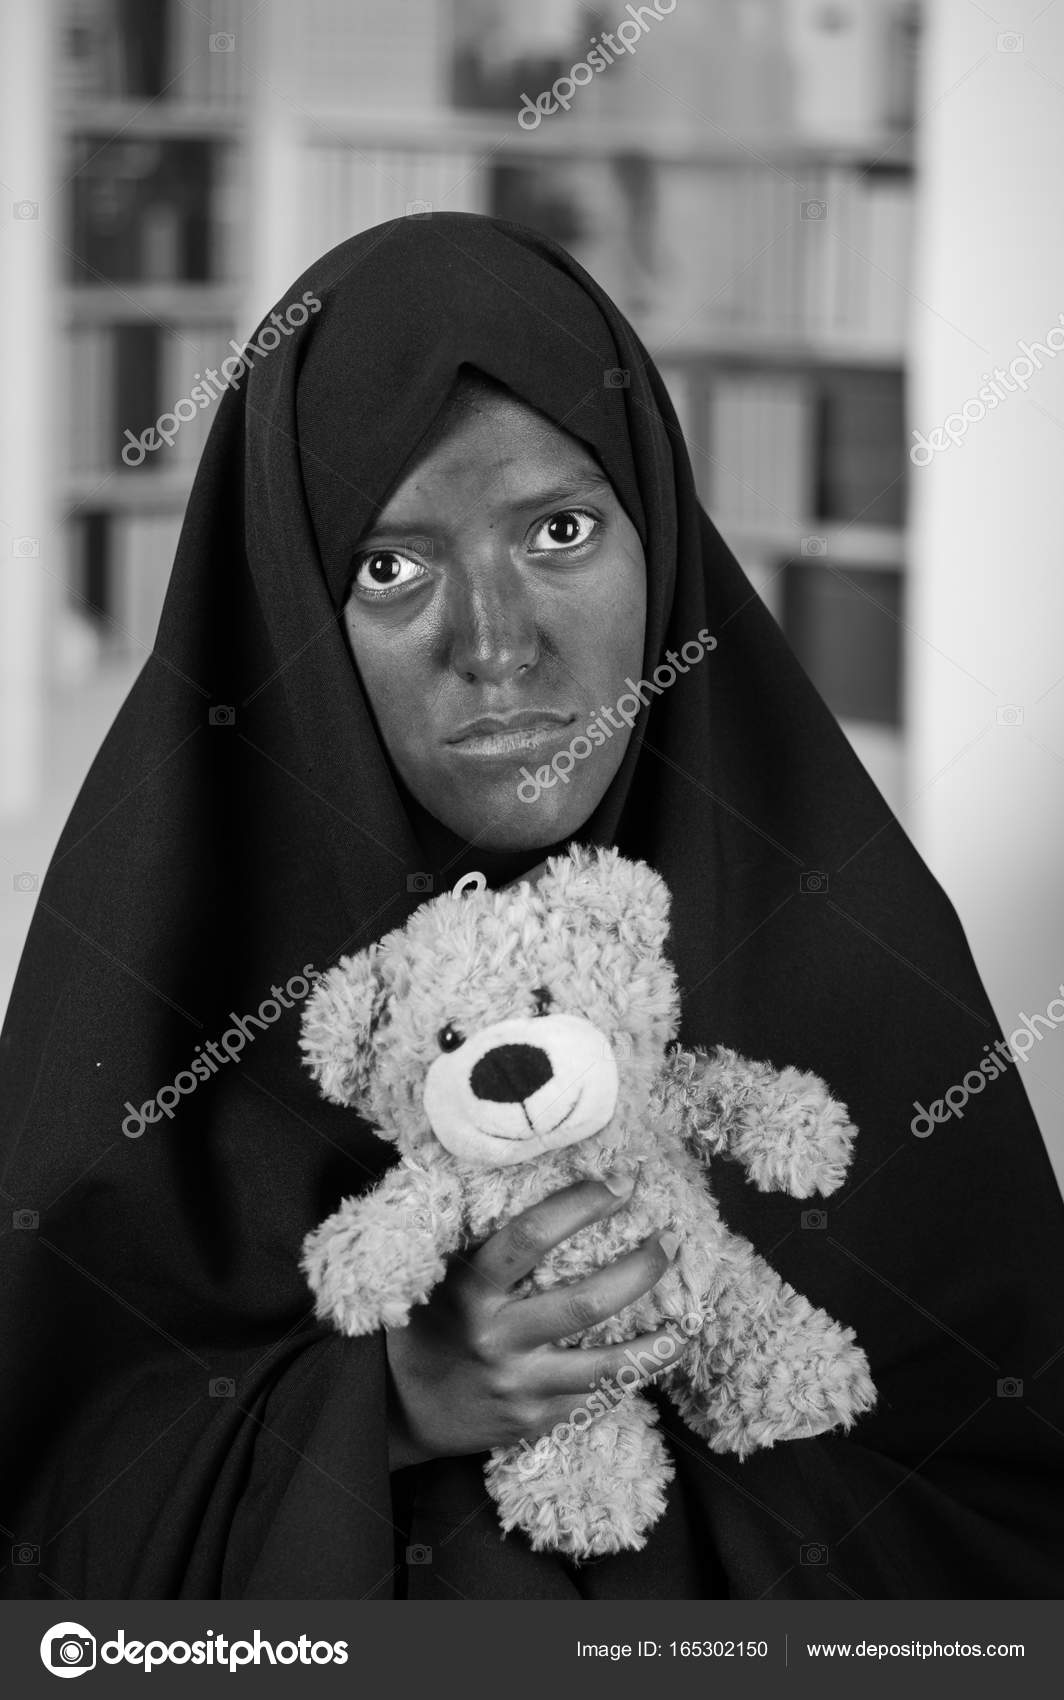 Portrait of a sad muslim girl wearing a hijab and holding her arms her teddy bear in a blurred background in black and white effect